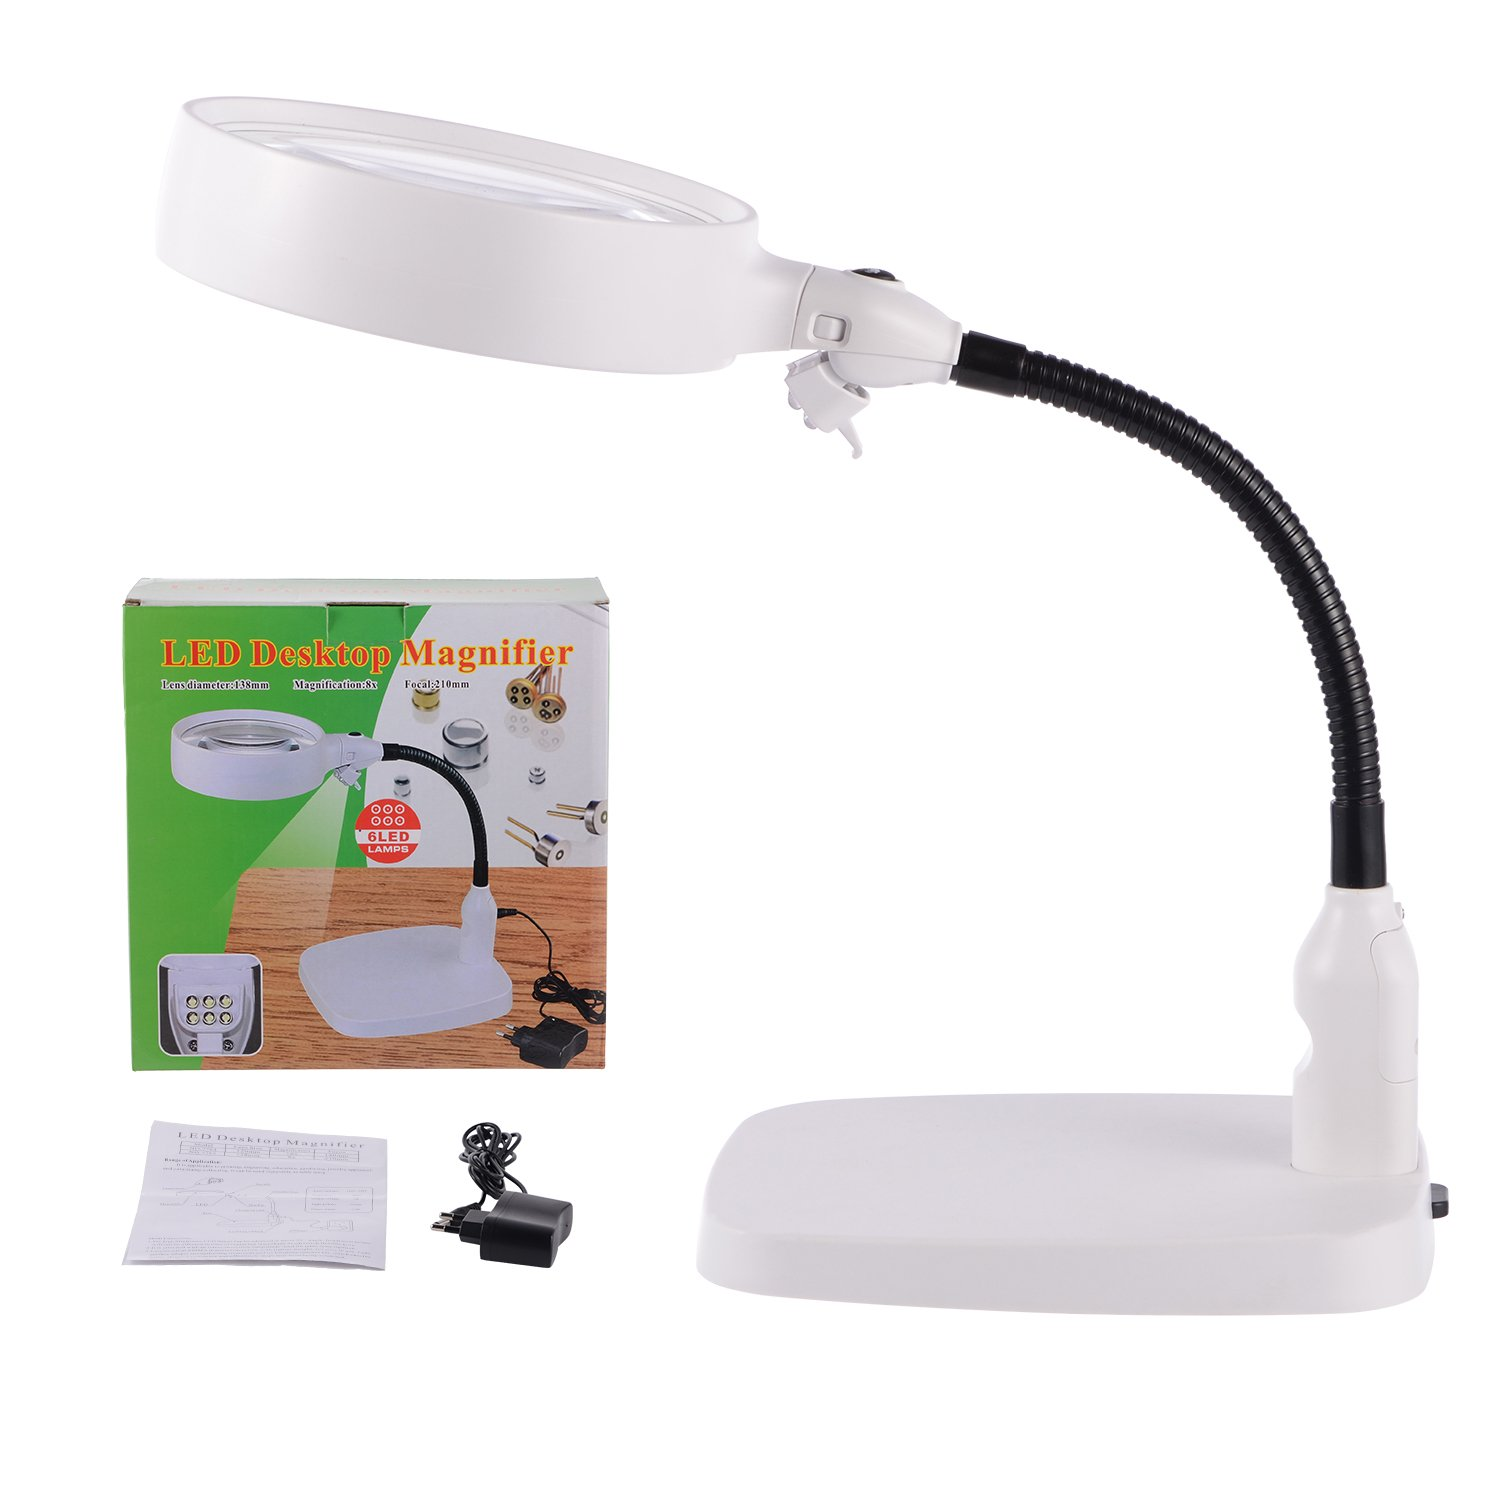 tm-home Large 8X Magnifying Glass with Light and Stand, Folding Design with 6 LED Magnifying Lamp for Close Work